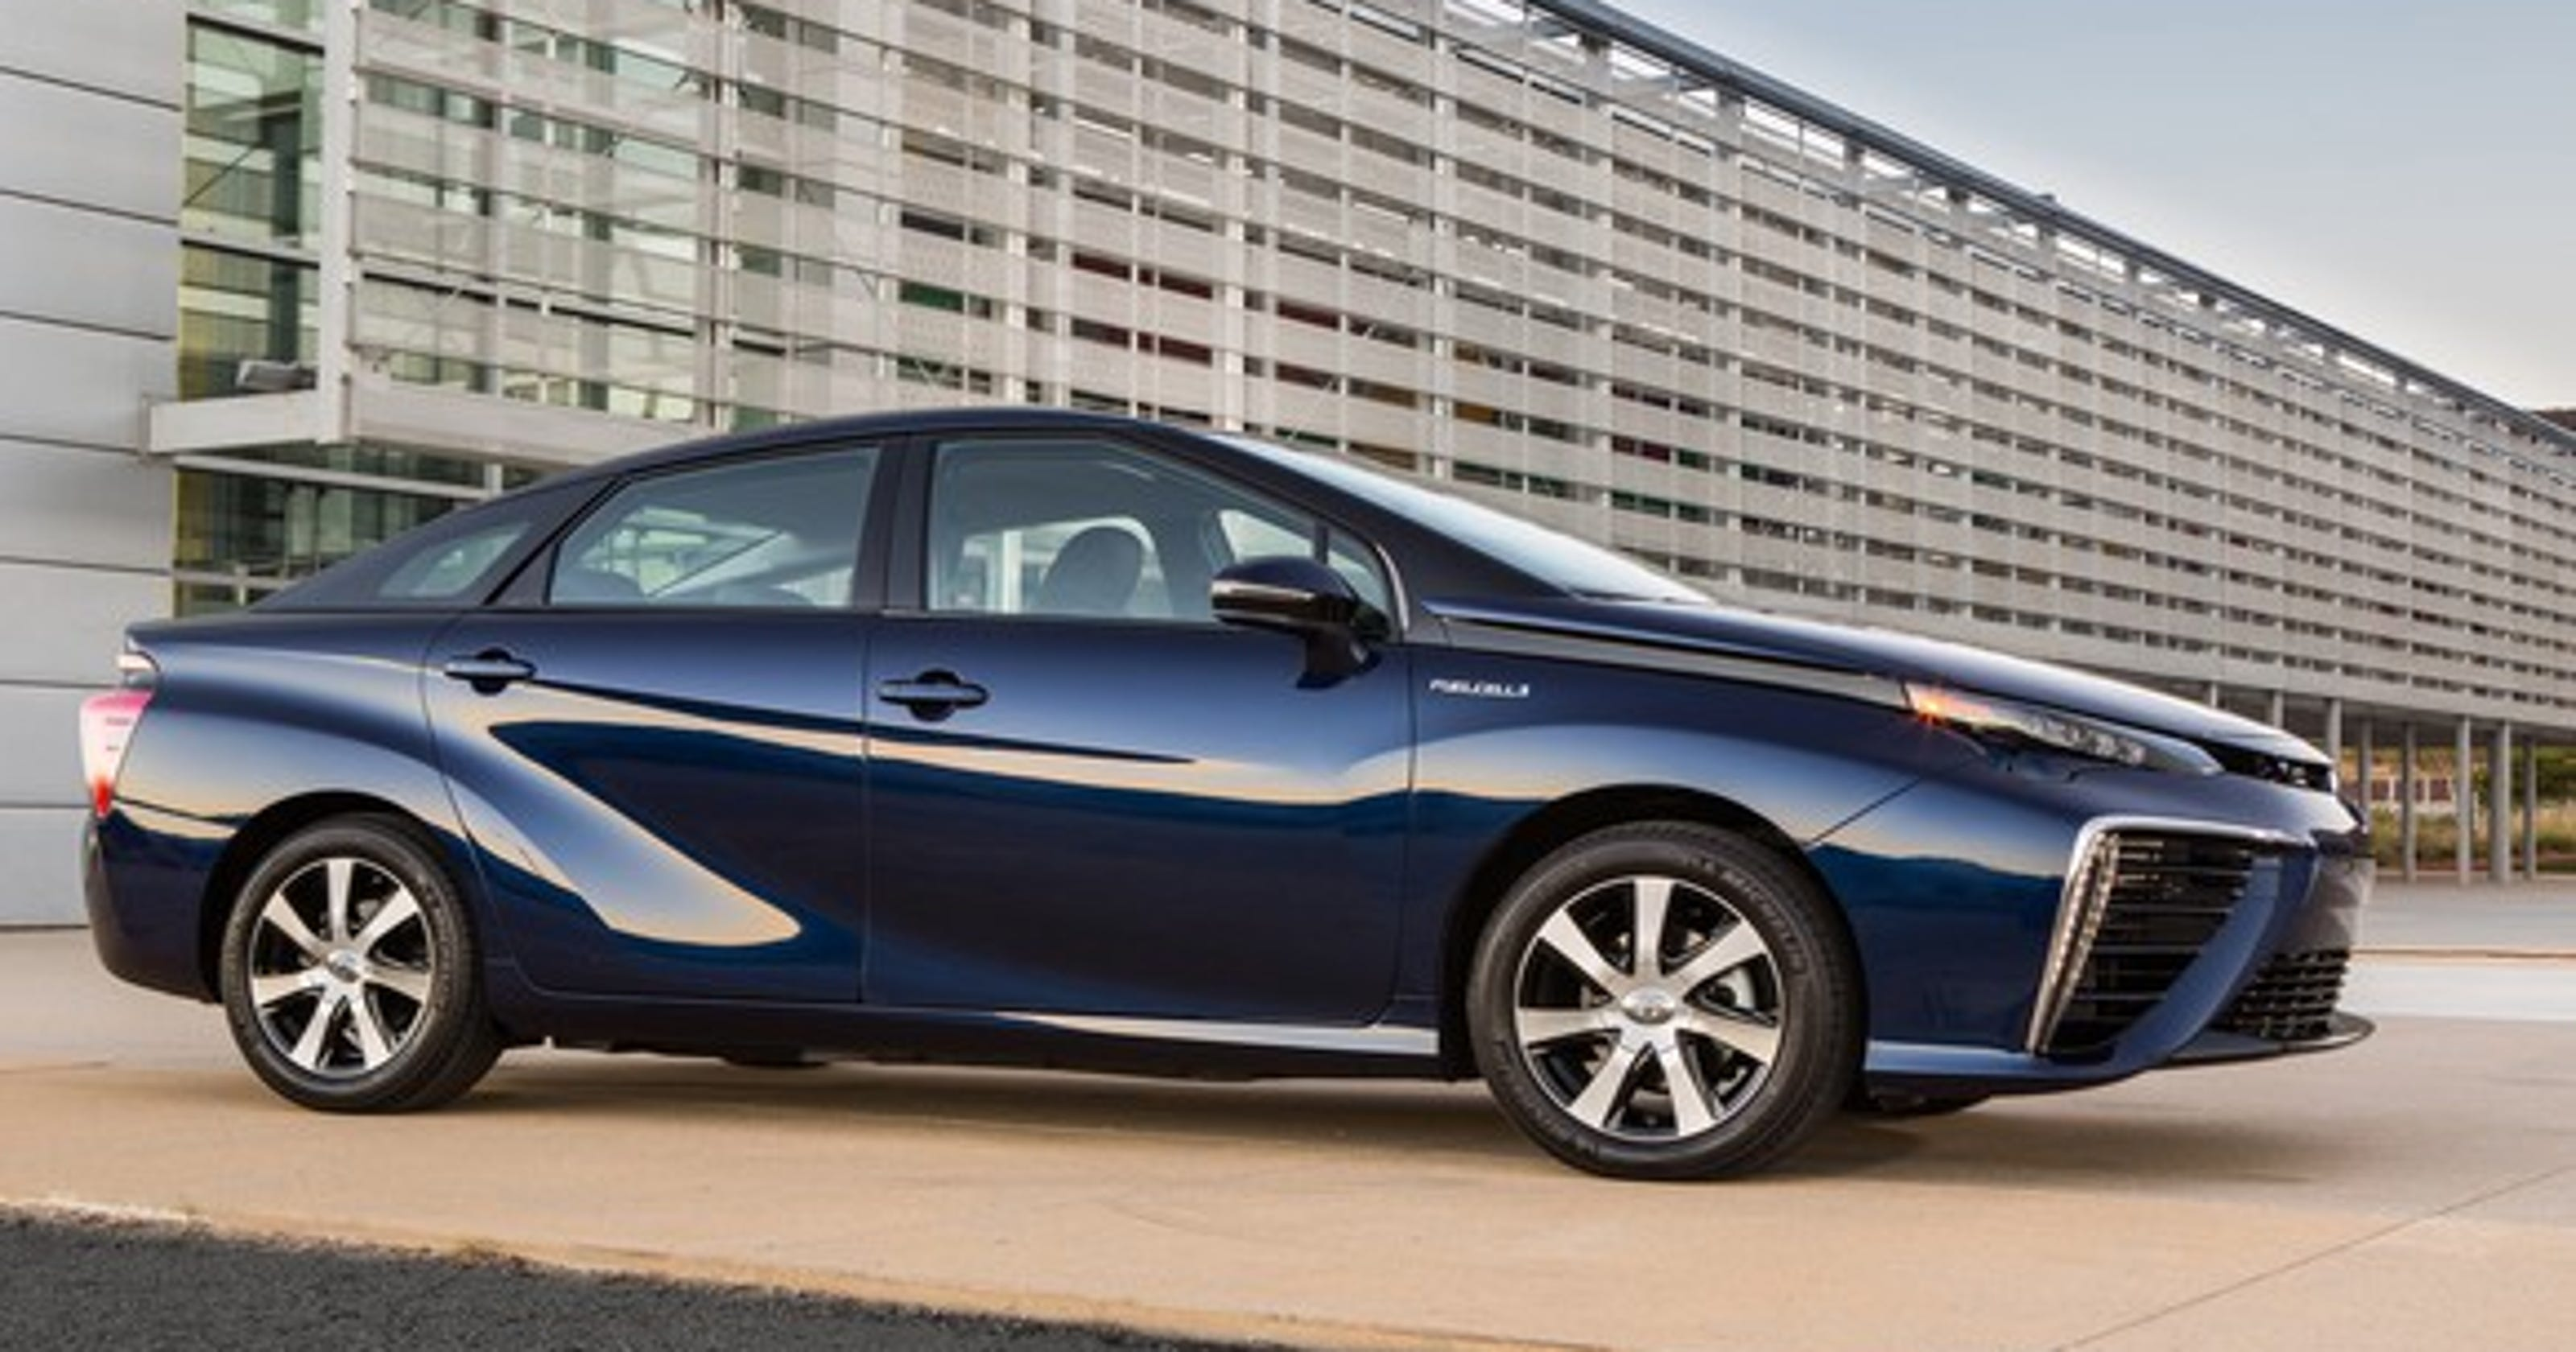 Electric Vehicles: Toyota Could Become Tesla's Next Big